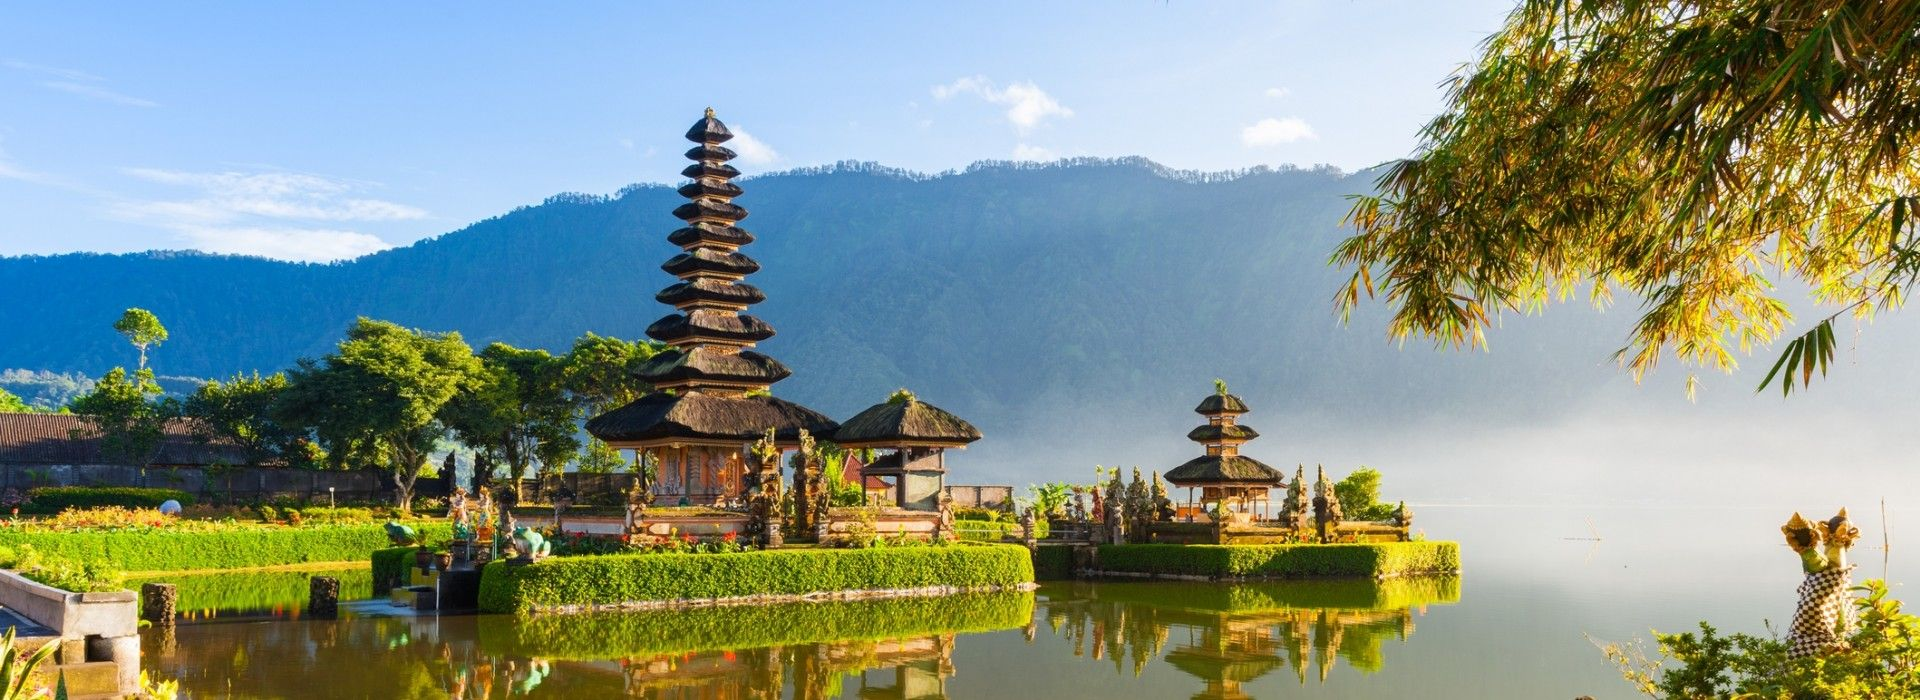 Boat tours, water sports and marine wildlife in Ubud